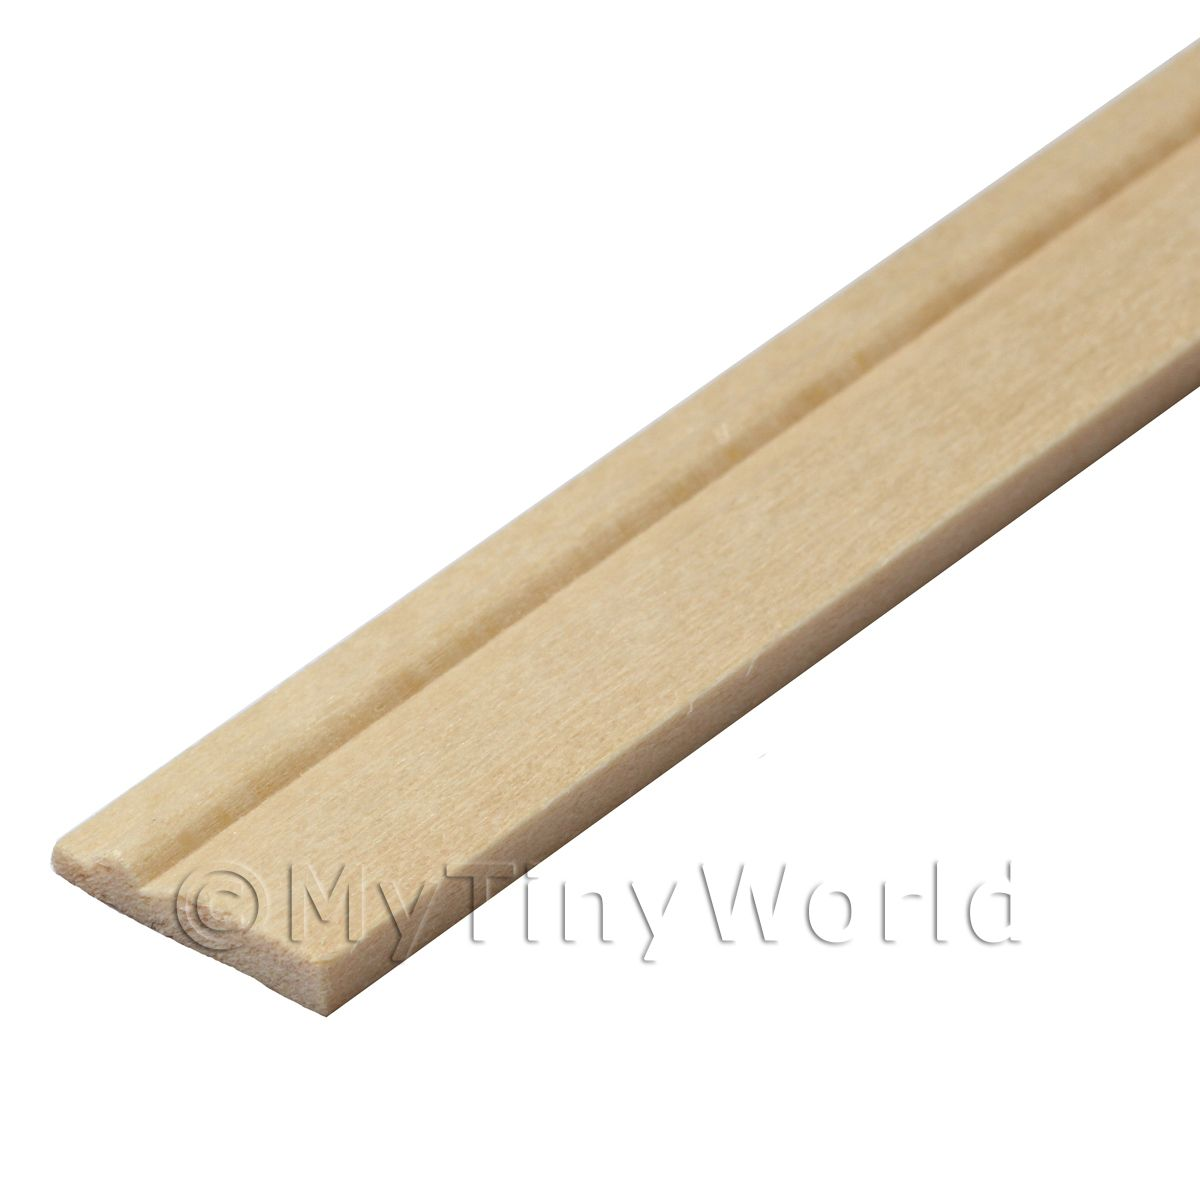 Dolls House Miniature 15mm Wood Skirting Board (Style 2)